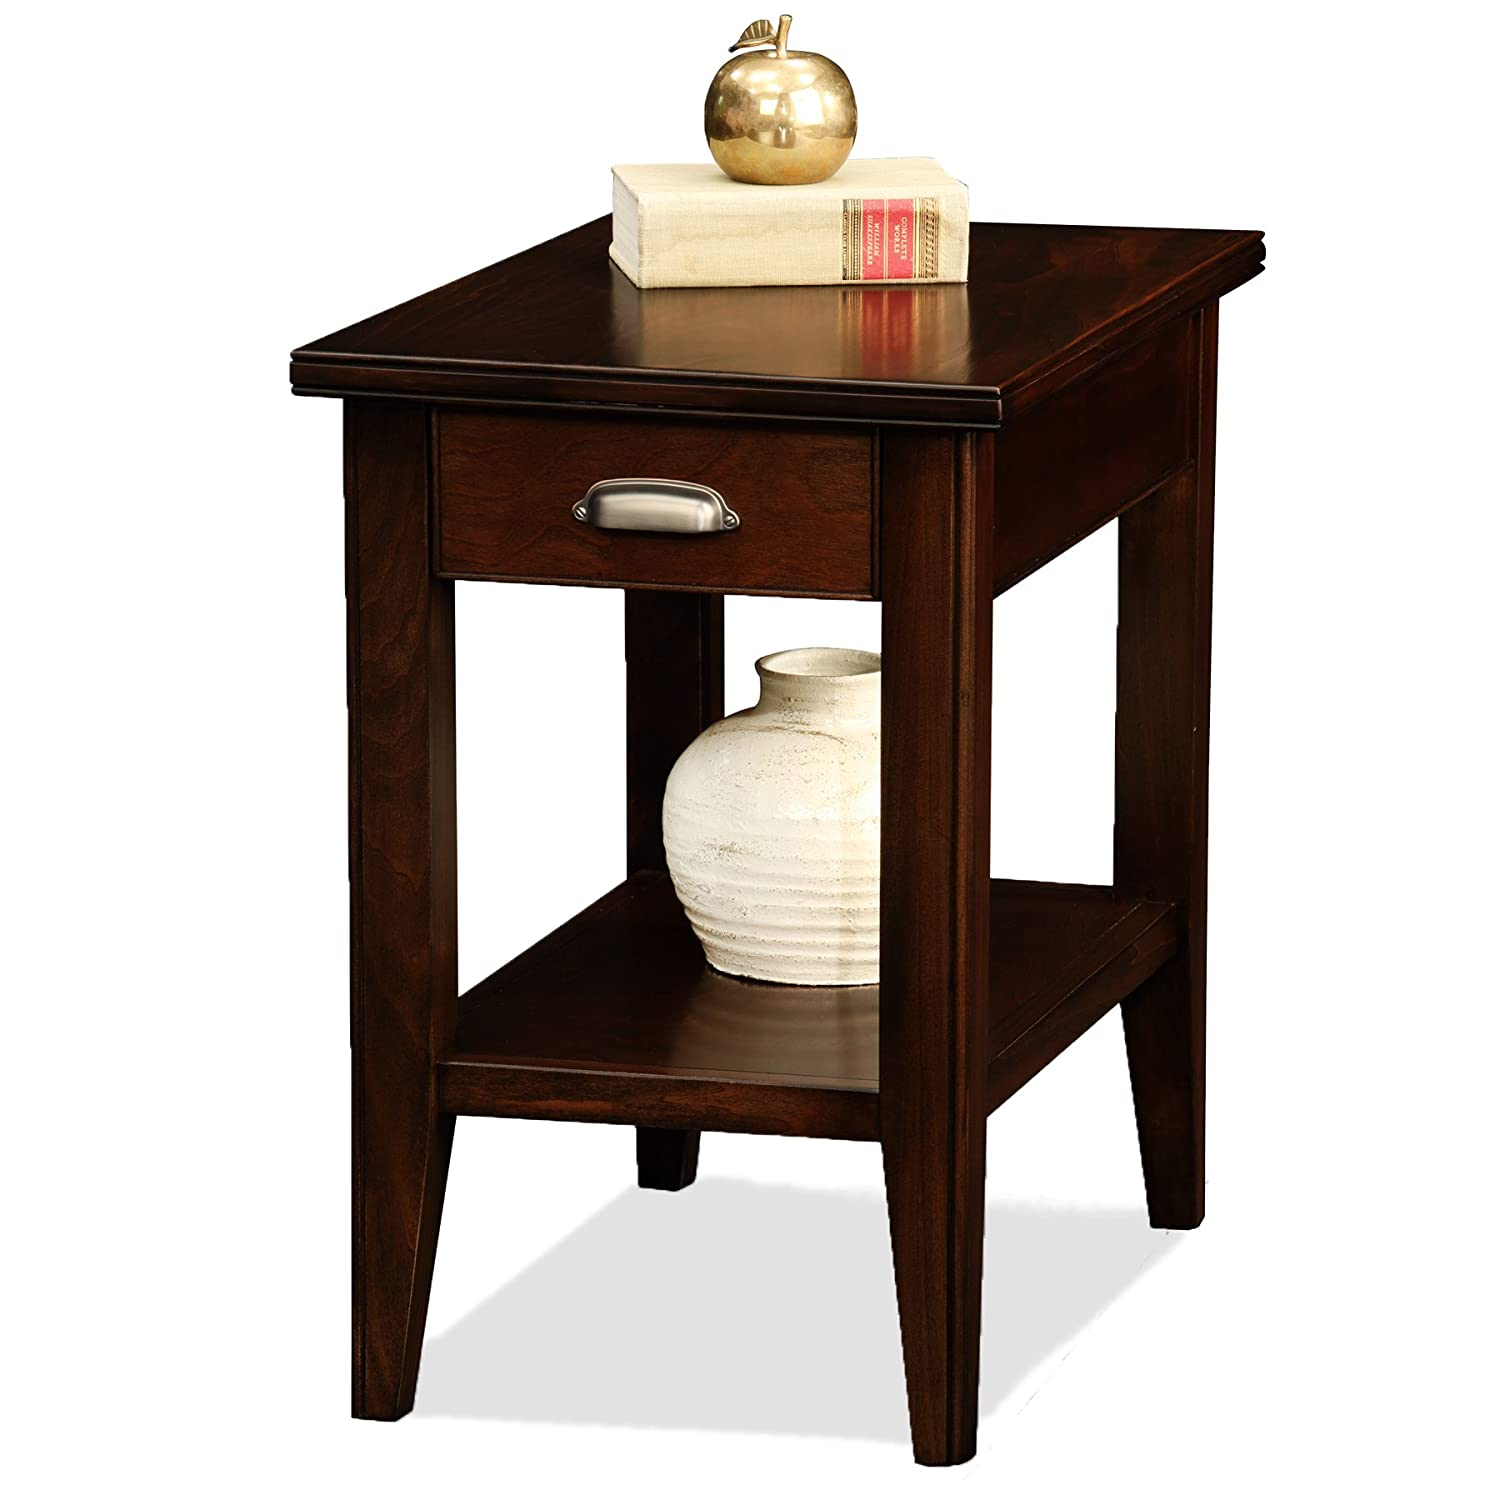 amazoncom leick laurent chairside end table with drawer kitchen  - amazoncom leick laurent chairside end table with drawer kitchen  dining